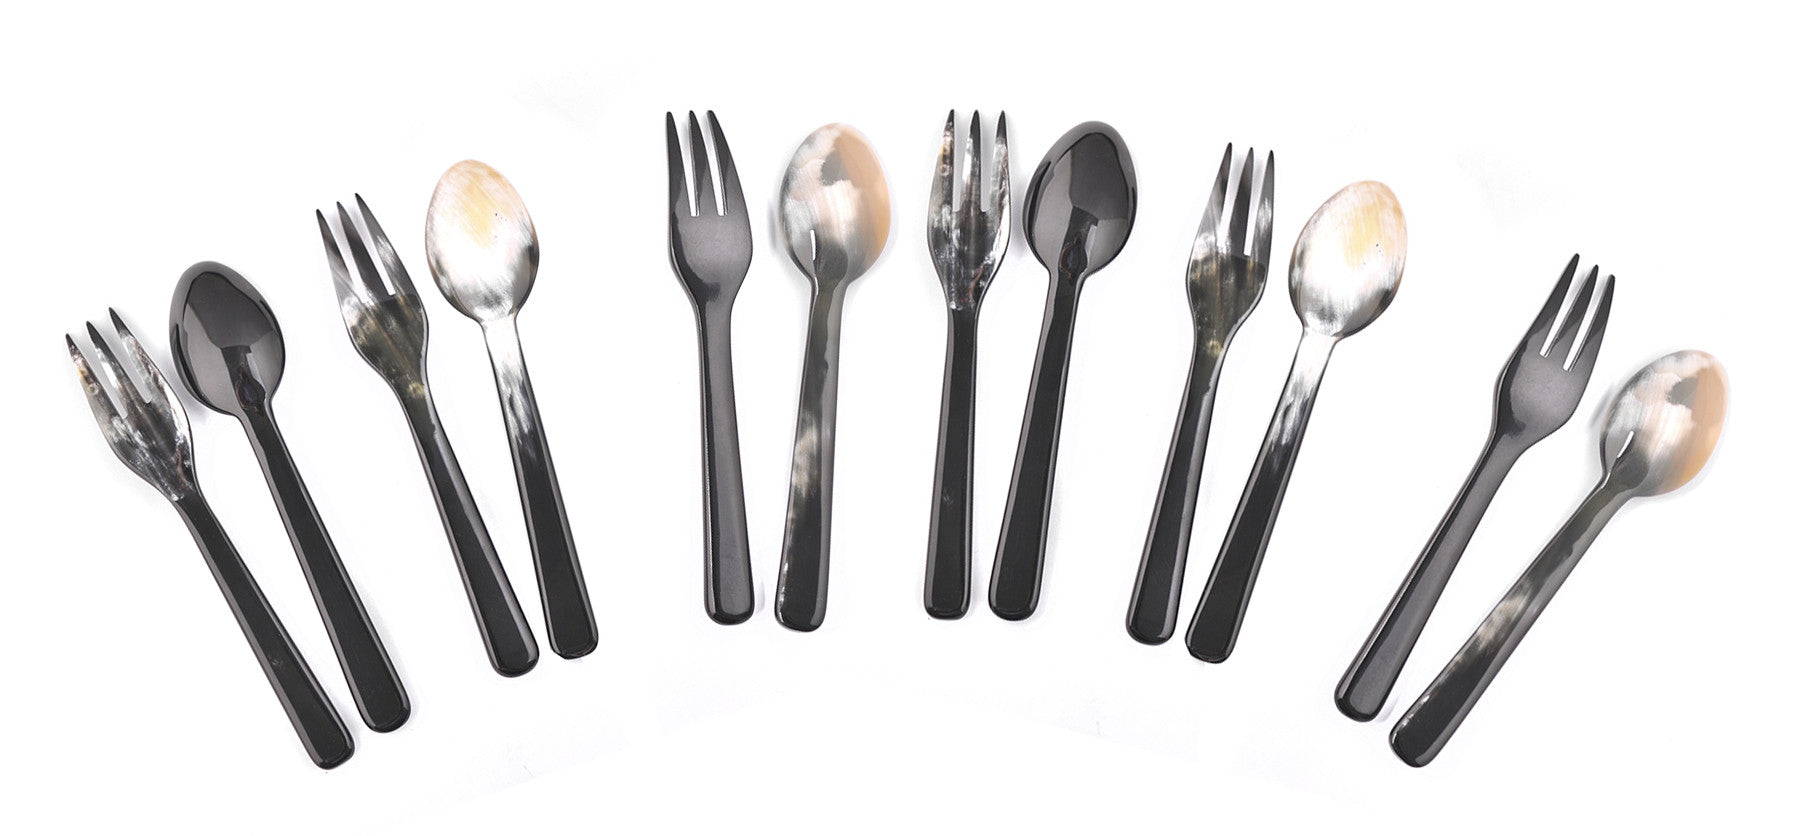 Buffalo Horn Spoon and Fork Set (6 Sets)